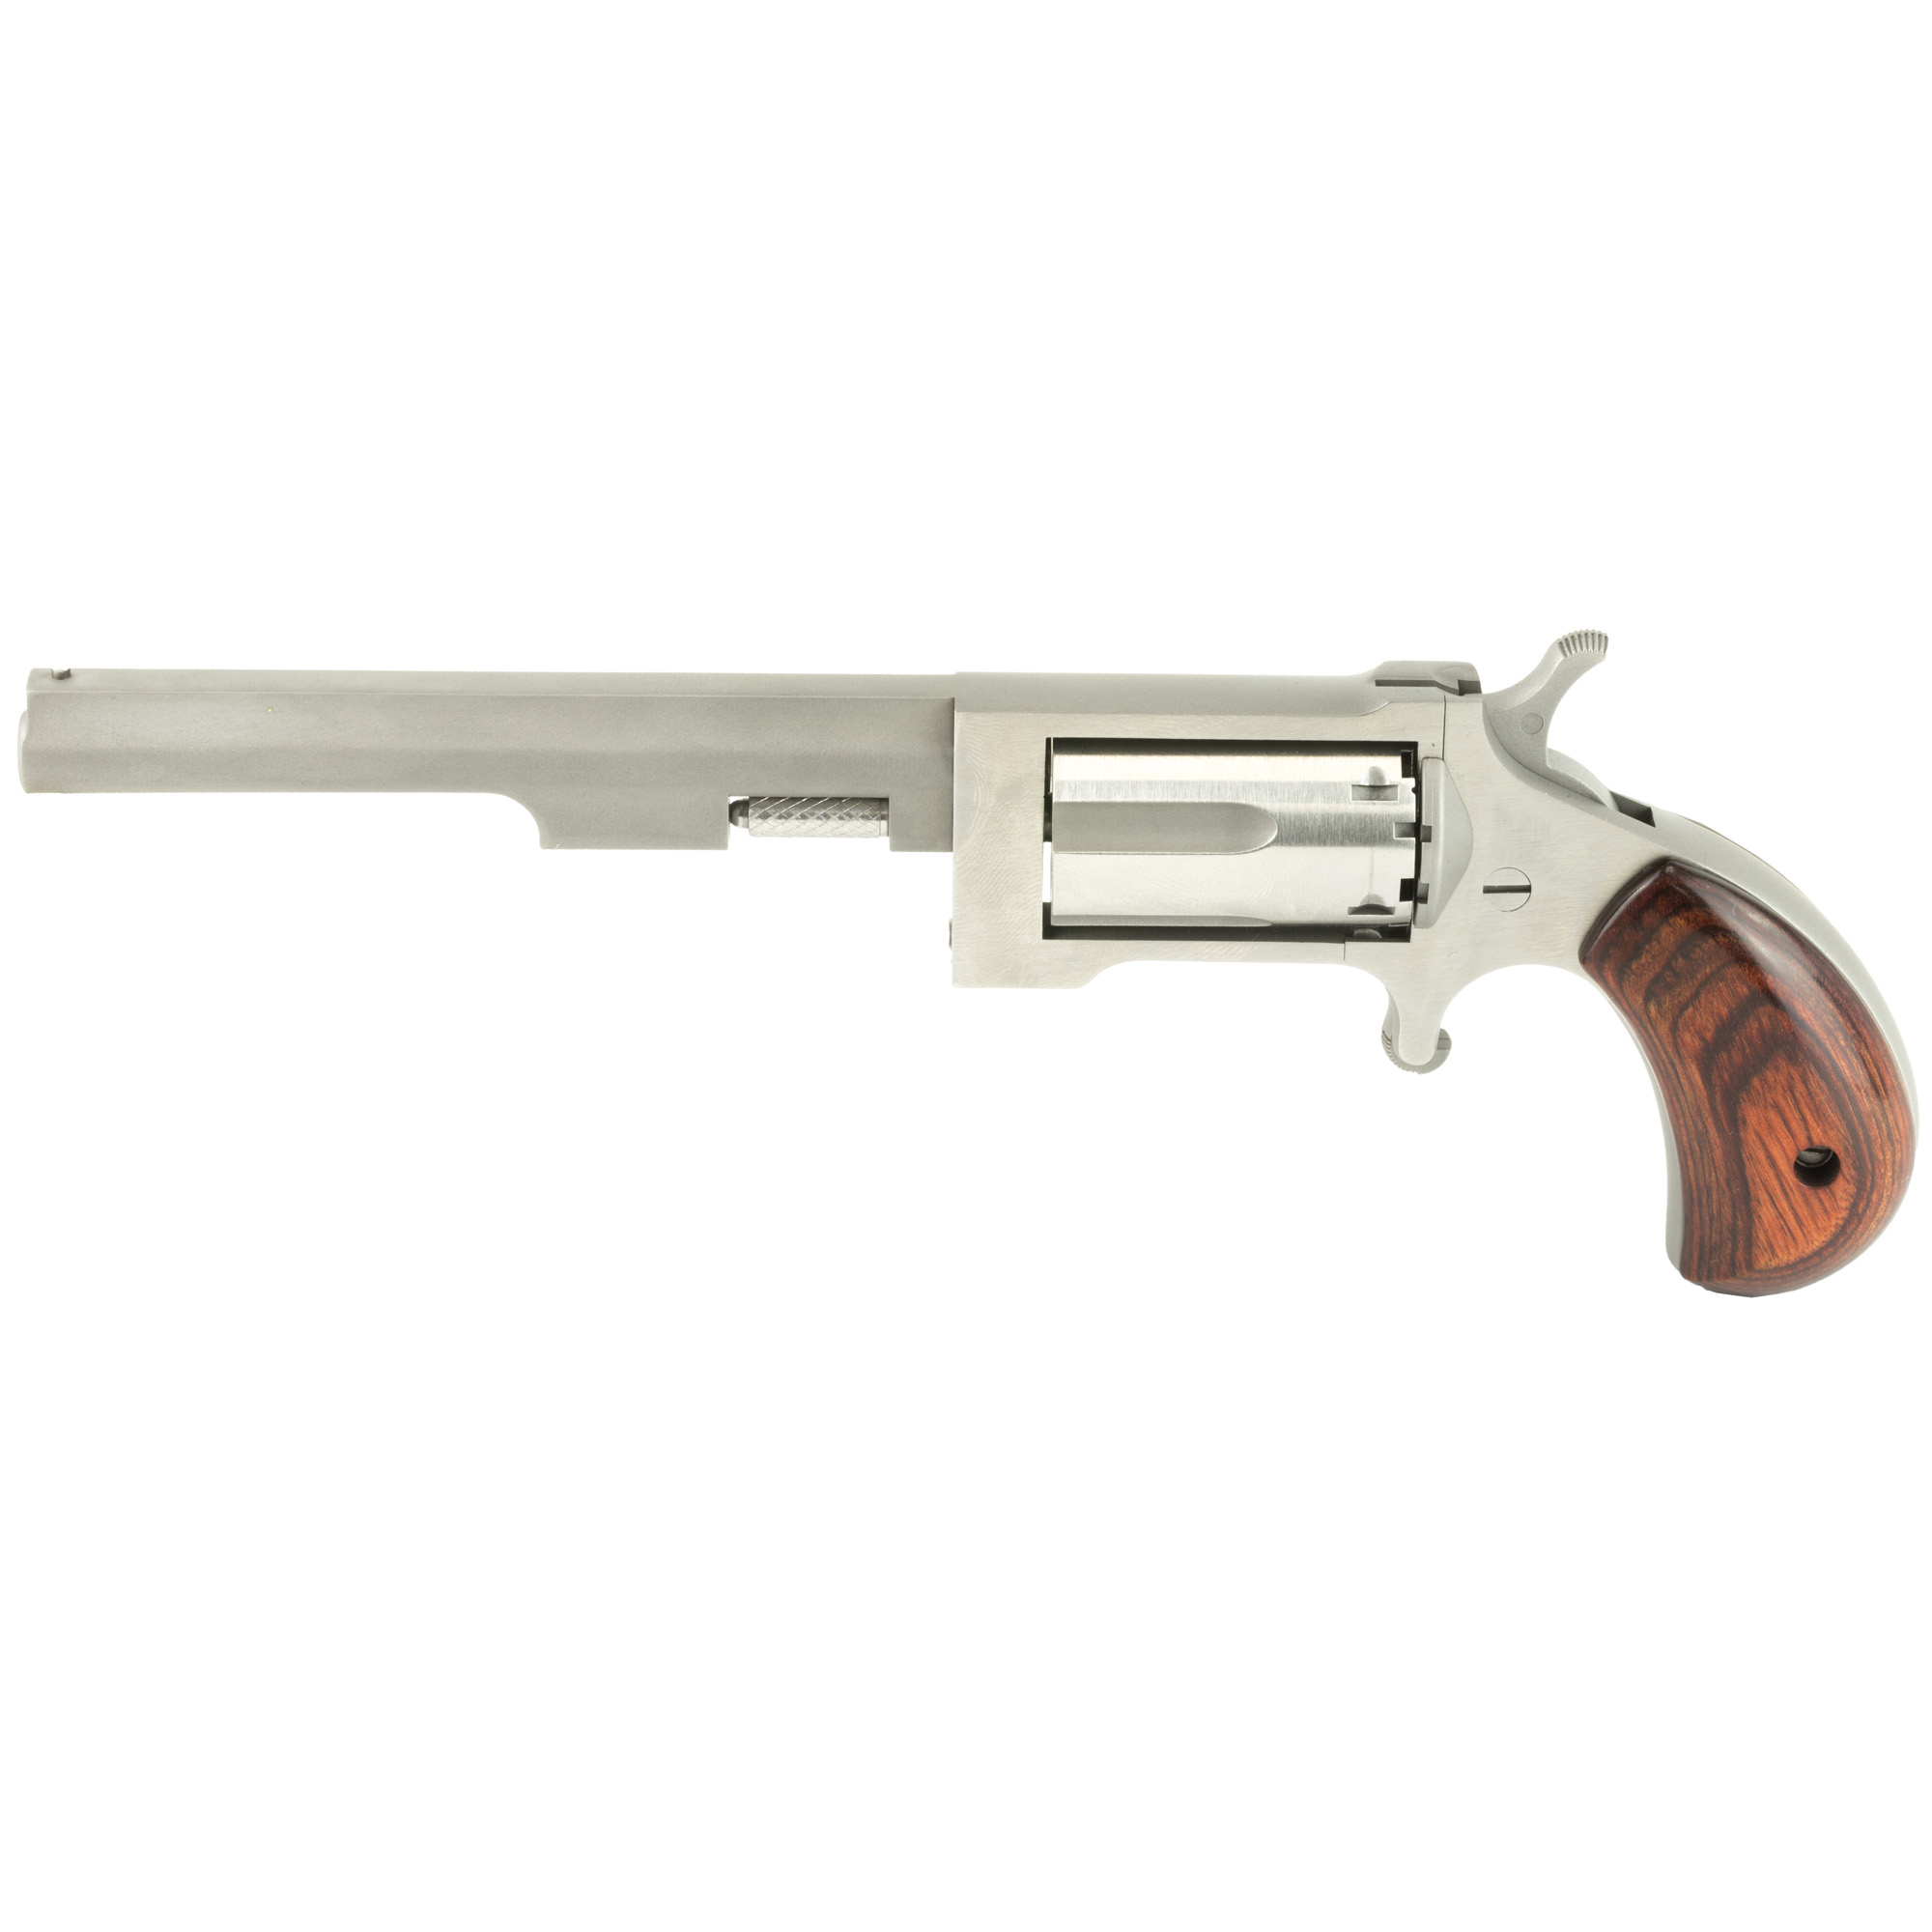 "The Sidewinder features a swing-out cylinder allowing for ""speedy"" reloads without removing the cylinder. As with all of the mini-revolvers"" the frame starts out as an investment casting"" with the barrel and cylinder machined from solid stainless steel bar stock. This allows for precise machining to meet the tolerance levels needed for a firearm of that size. The fit and finish is excellent. The cylinder and sides of the frame are polished"" while the topstrap"" sides of the barrel"" bottom of the frame and backstrap have a matte finish that provides an attractive contrast. The Sidewinder is a five-shot"" single-action-only design with an exposed hammer and an unguarded trigger. The bird's-head profile of the grip has the same dimensions as the other Mini-Revolvers and will accommodate any of the optional stocks. Due to the internal design and the location of the cylinder hand and stop"" the Sidewinder opens to the right side of the frame. To open the cylinder"" the hammer is set on half-cock. The knurled end of the ejection rod is then pushed forward to release the cylinder. Once the cylinder is in the open position"" the ejector rod is depressed"" allowing the empty cases to be partially ejected. The size and design requires the empty cases to be individually removed"" and the cylinder has to be rotated to allow the empties to clear the stock. 5-Round capacity."